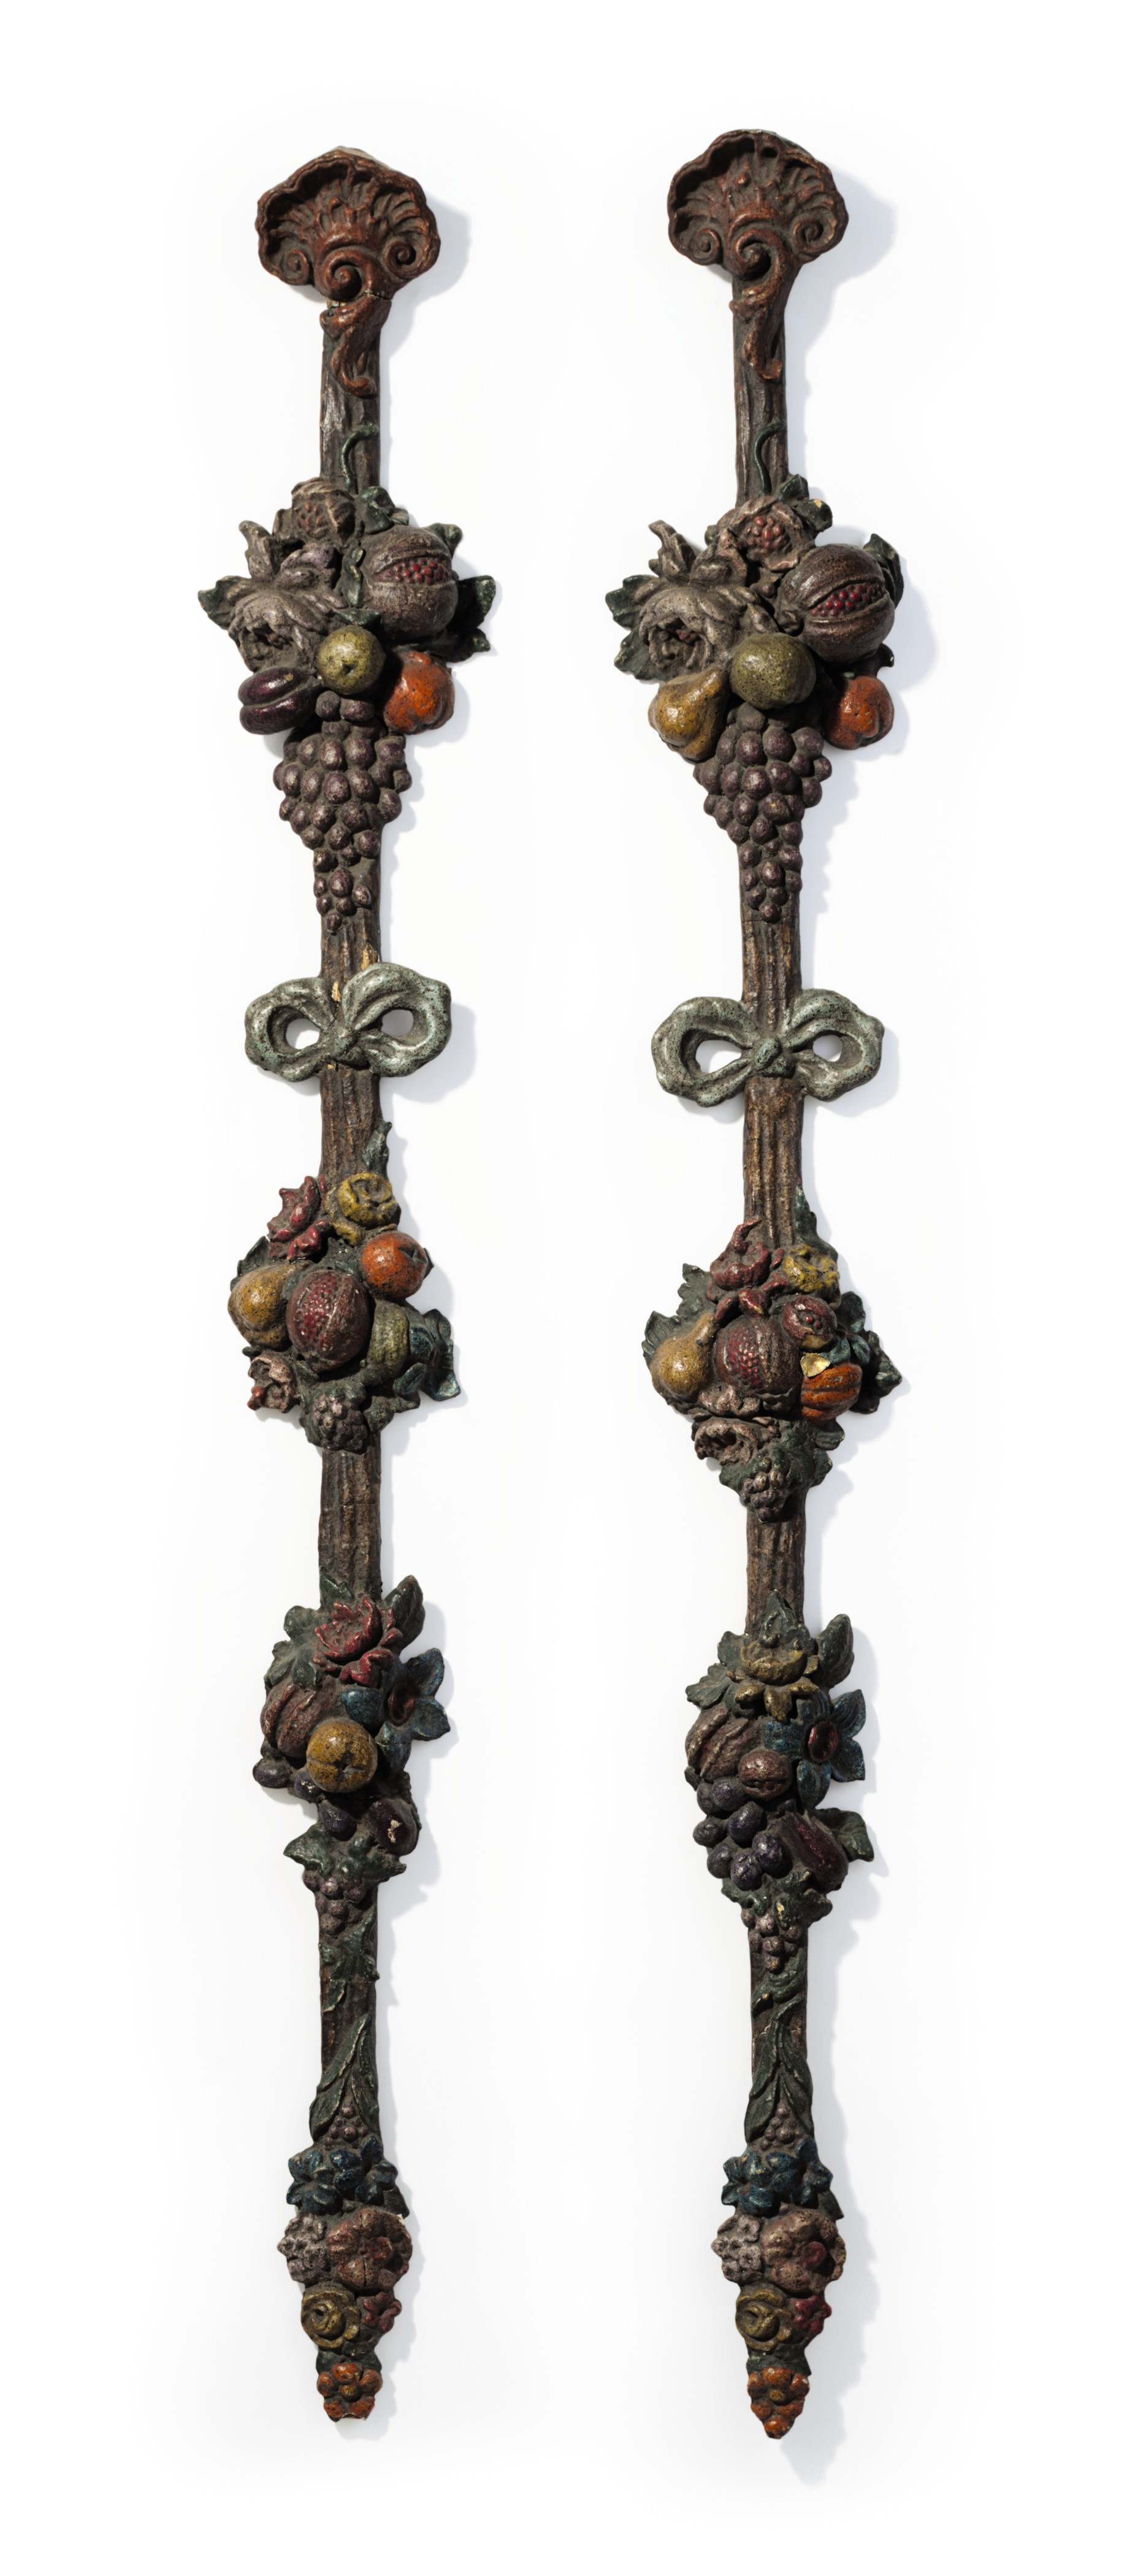 A PAIR OF VICTORIAN POLYCHROME-PAINTED COMPOSITION WALL HANGINGS